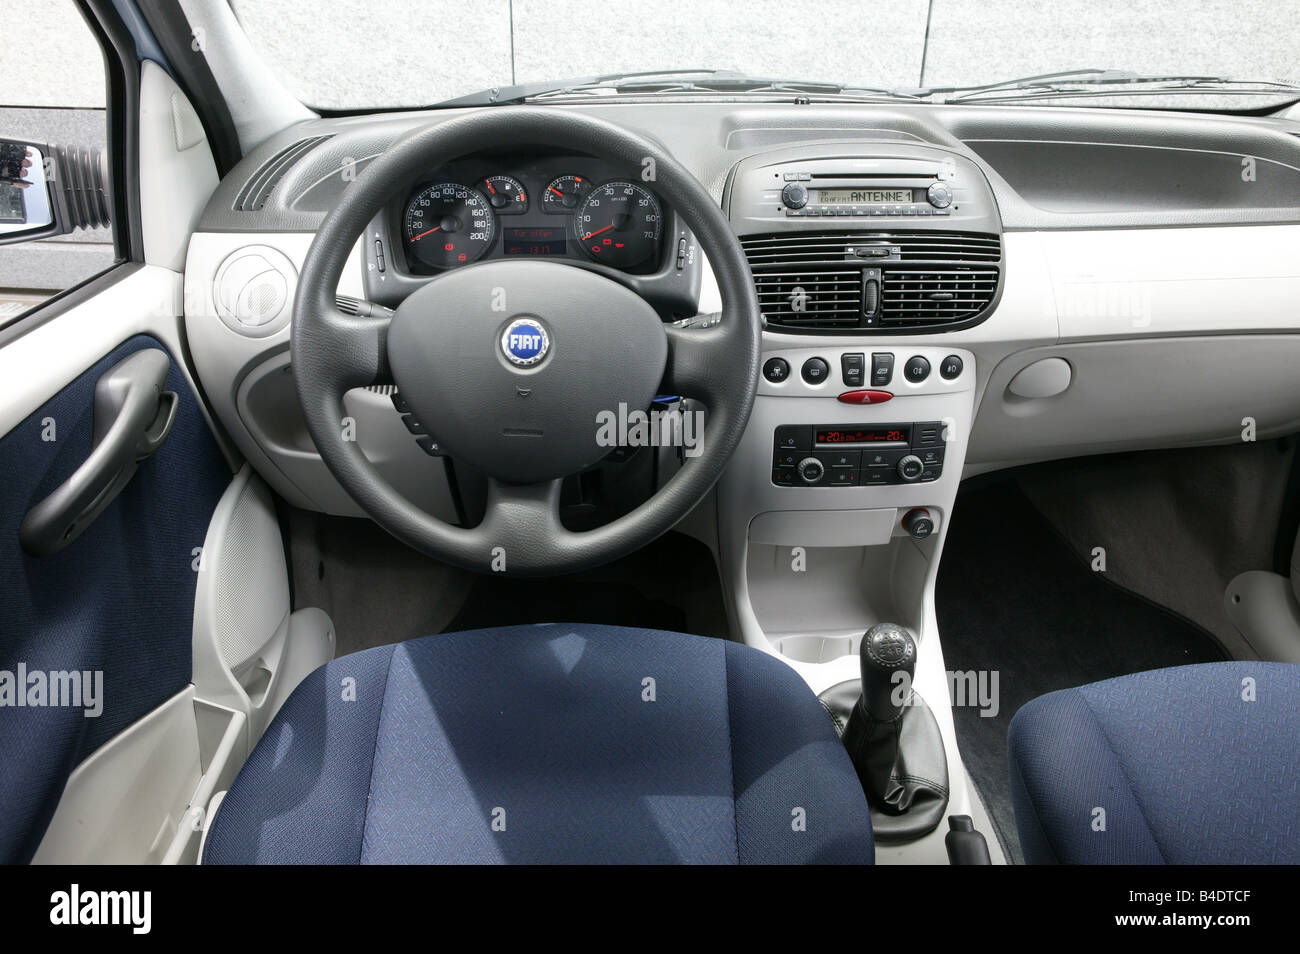 Car, Fiat Punto 1.3 JTD, small approx., Limousine, light Stock Photo ...